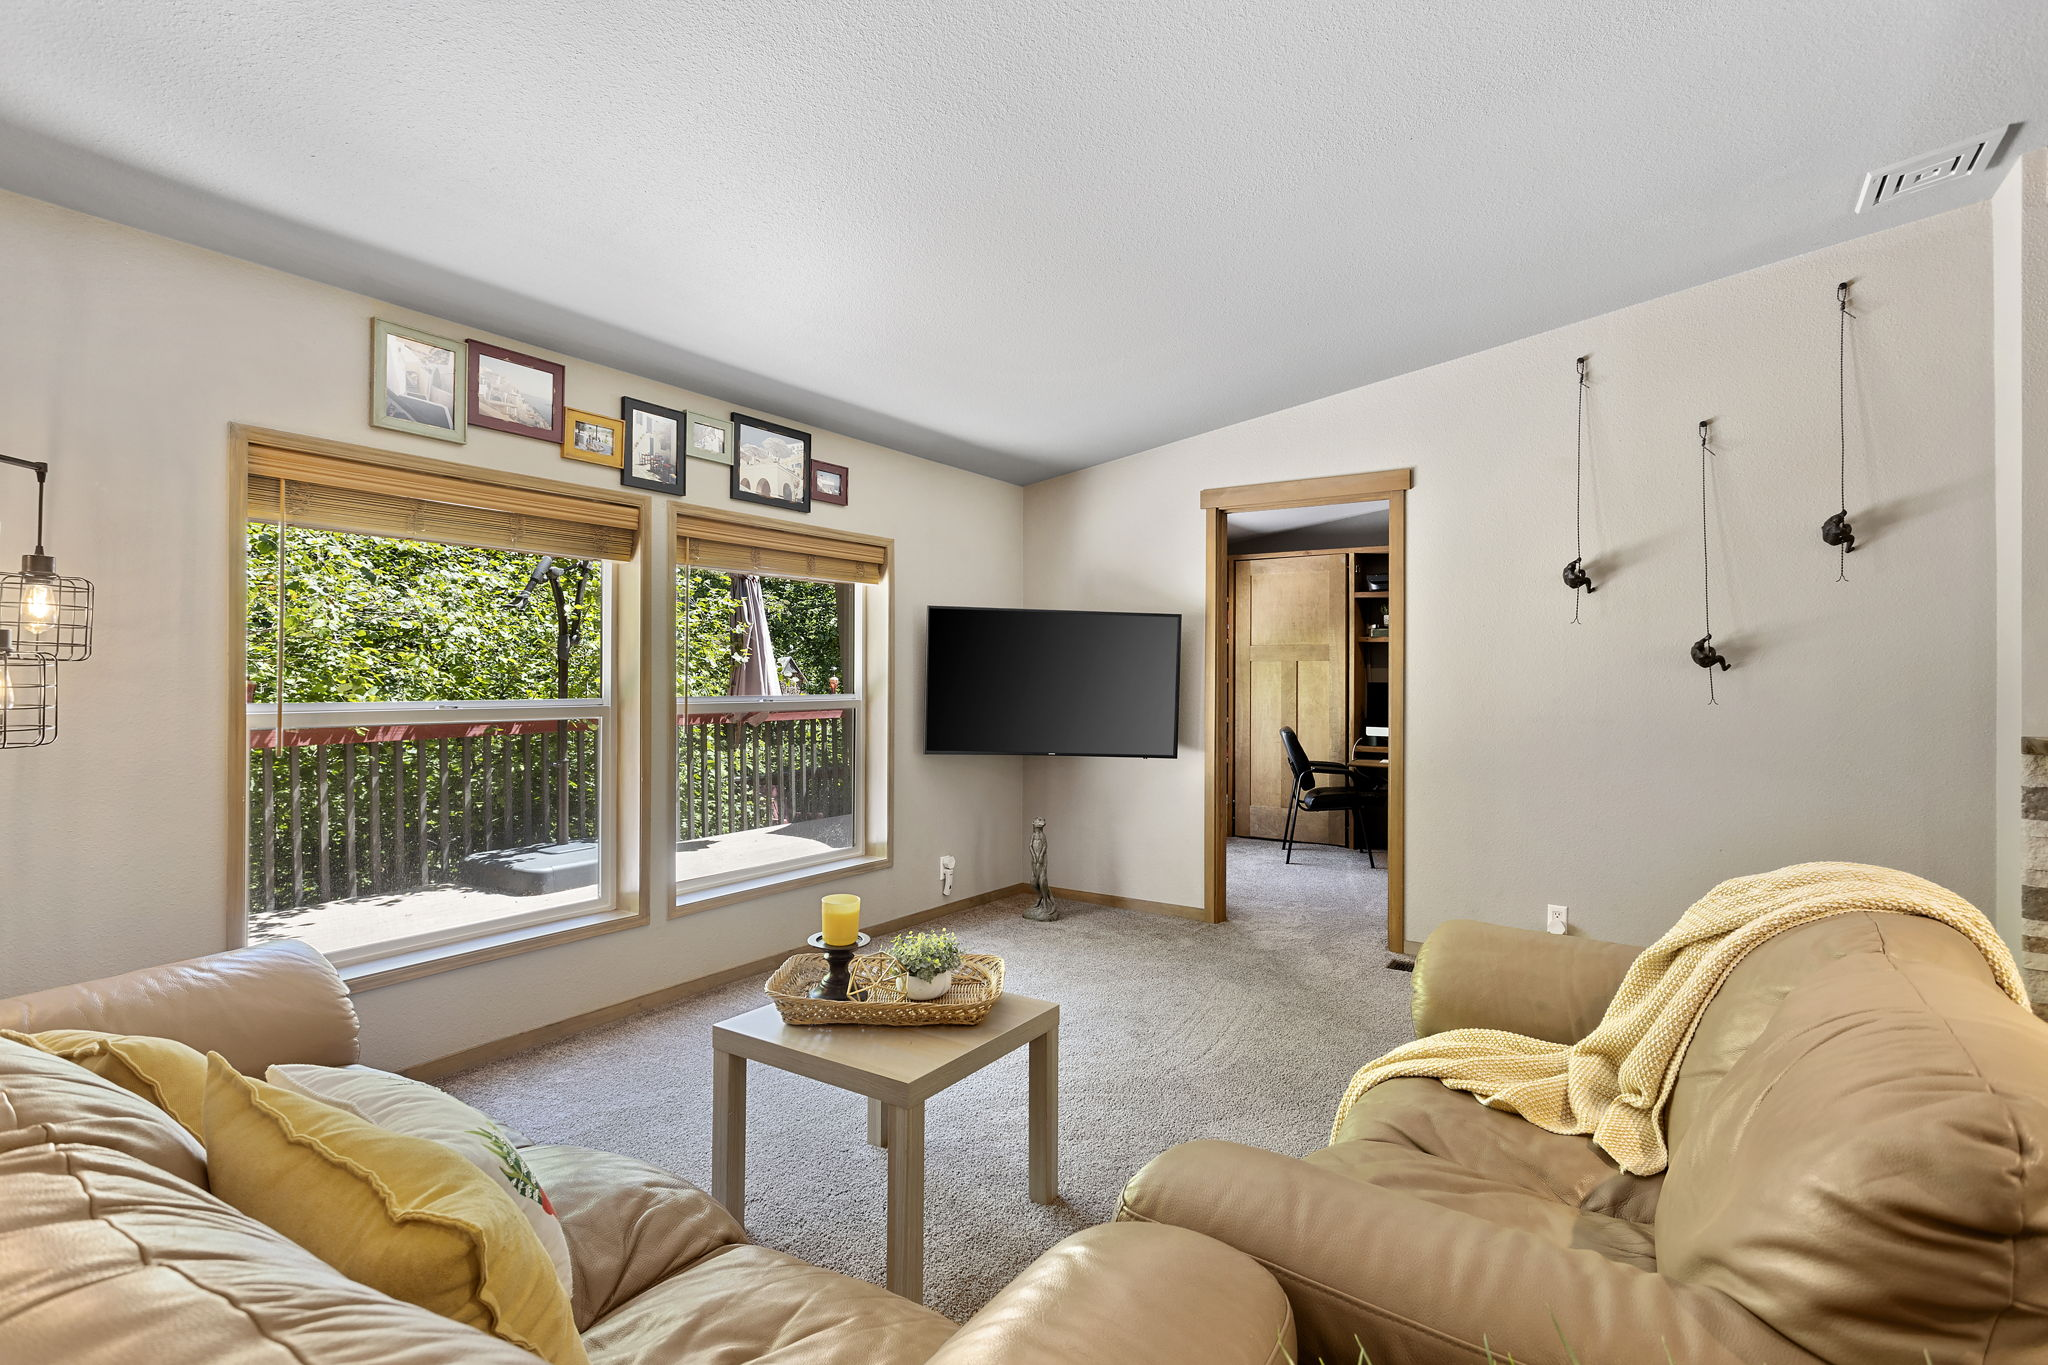 Living room has easy access to home office guest bedroom with custom twin murphy bed/desk!